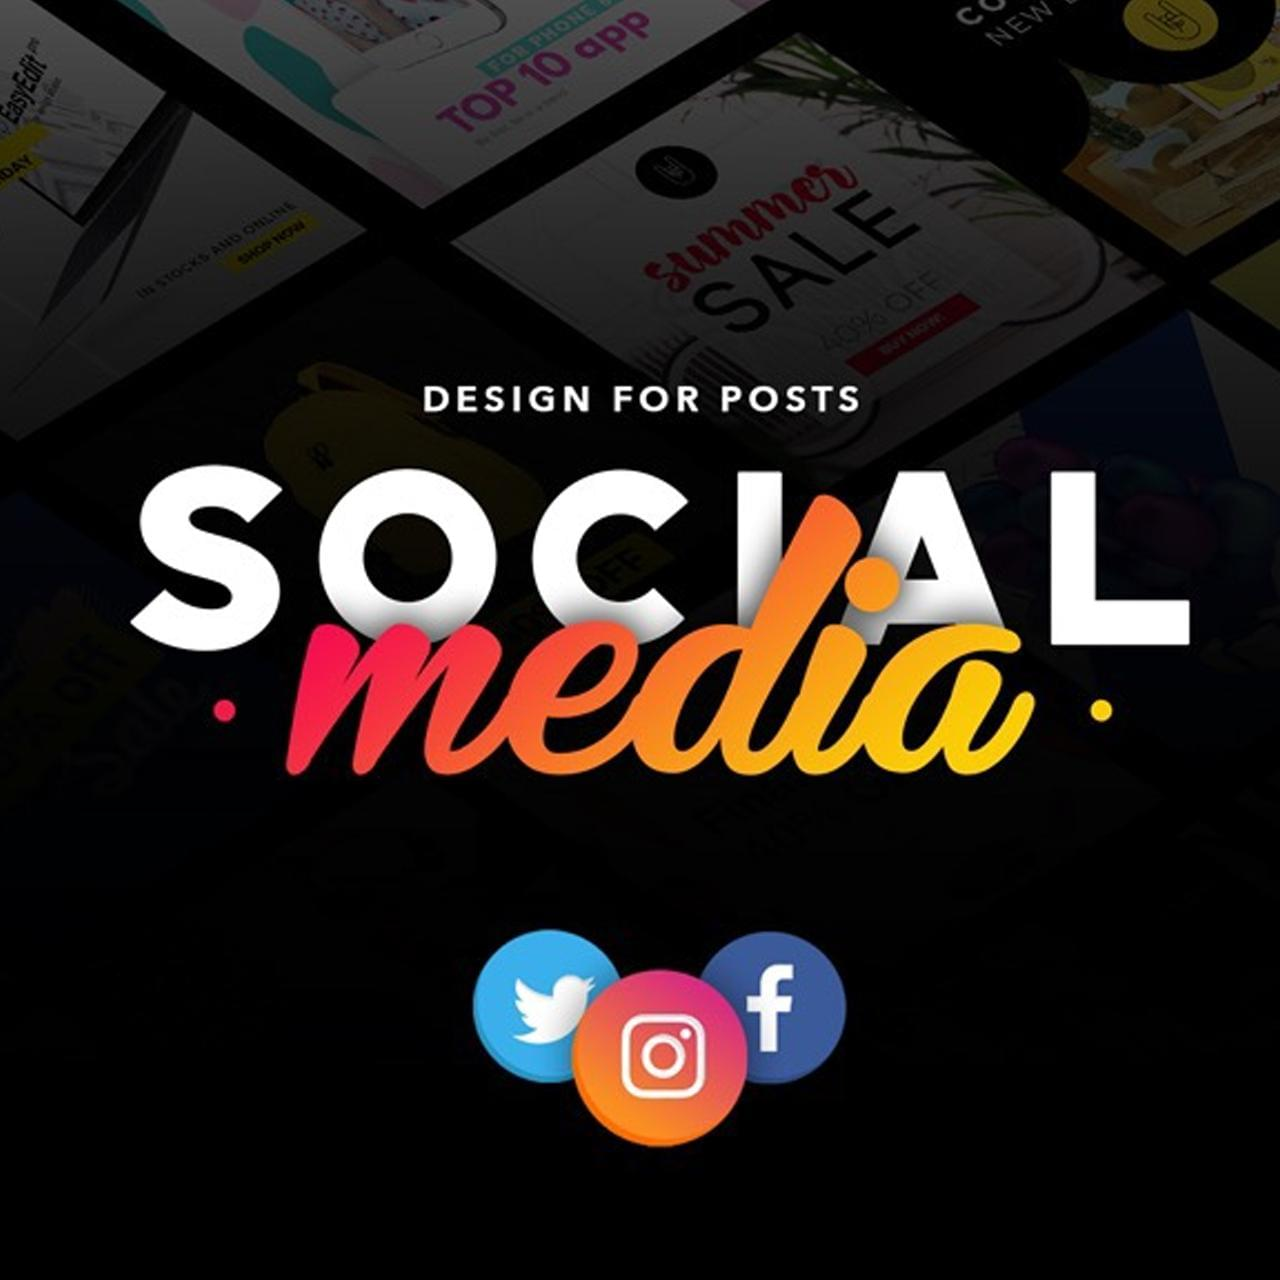 Social Media Posts For Various Social Media Platforms by AzherJawed - 112503